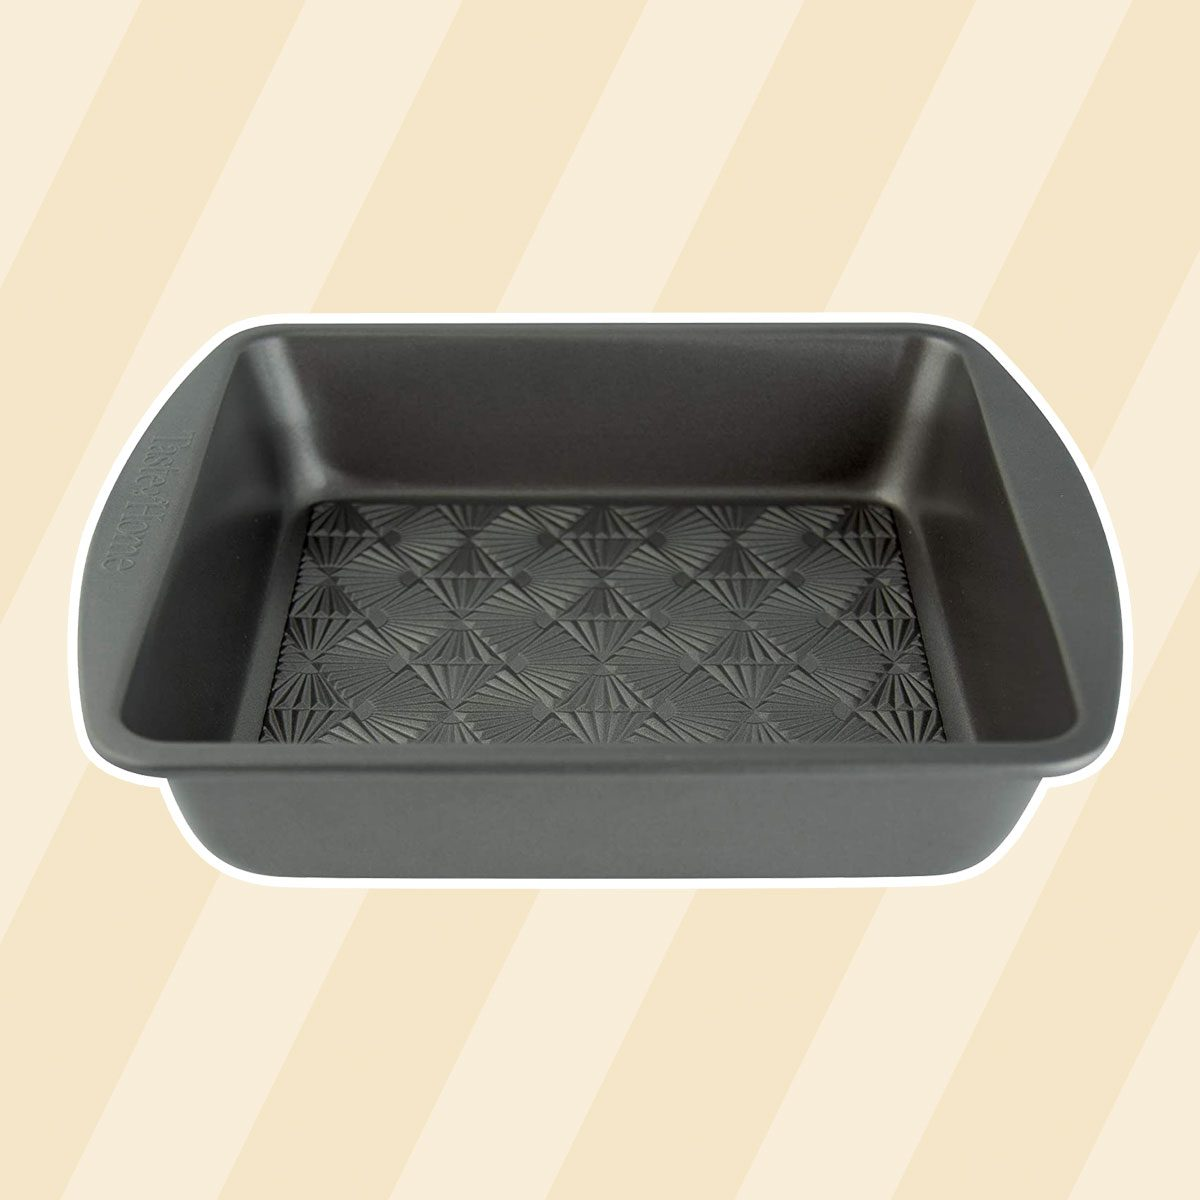 Taste of Home 8-inch Non-Stick Metal Square Baking Pan